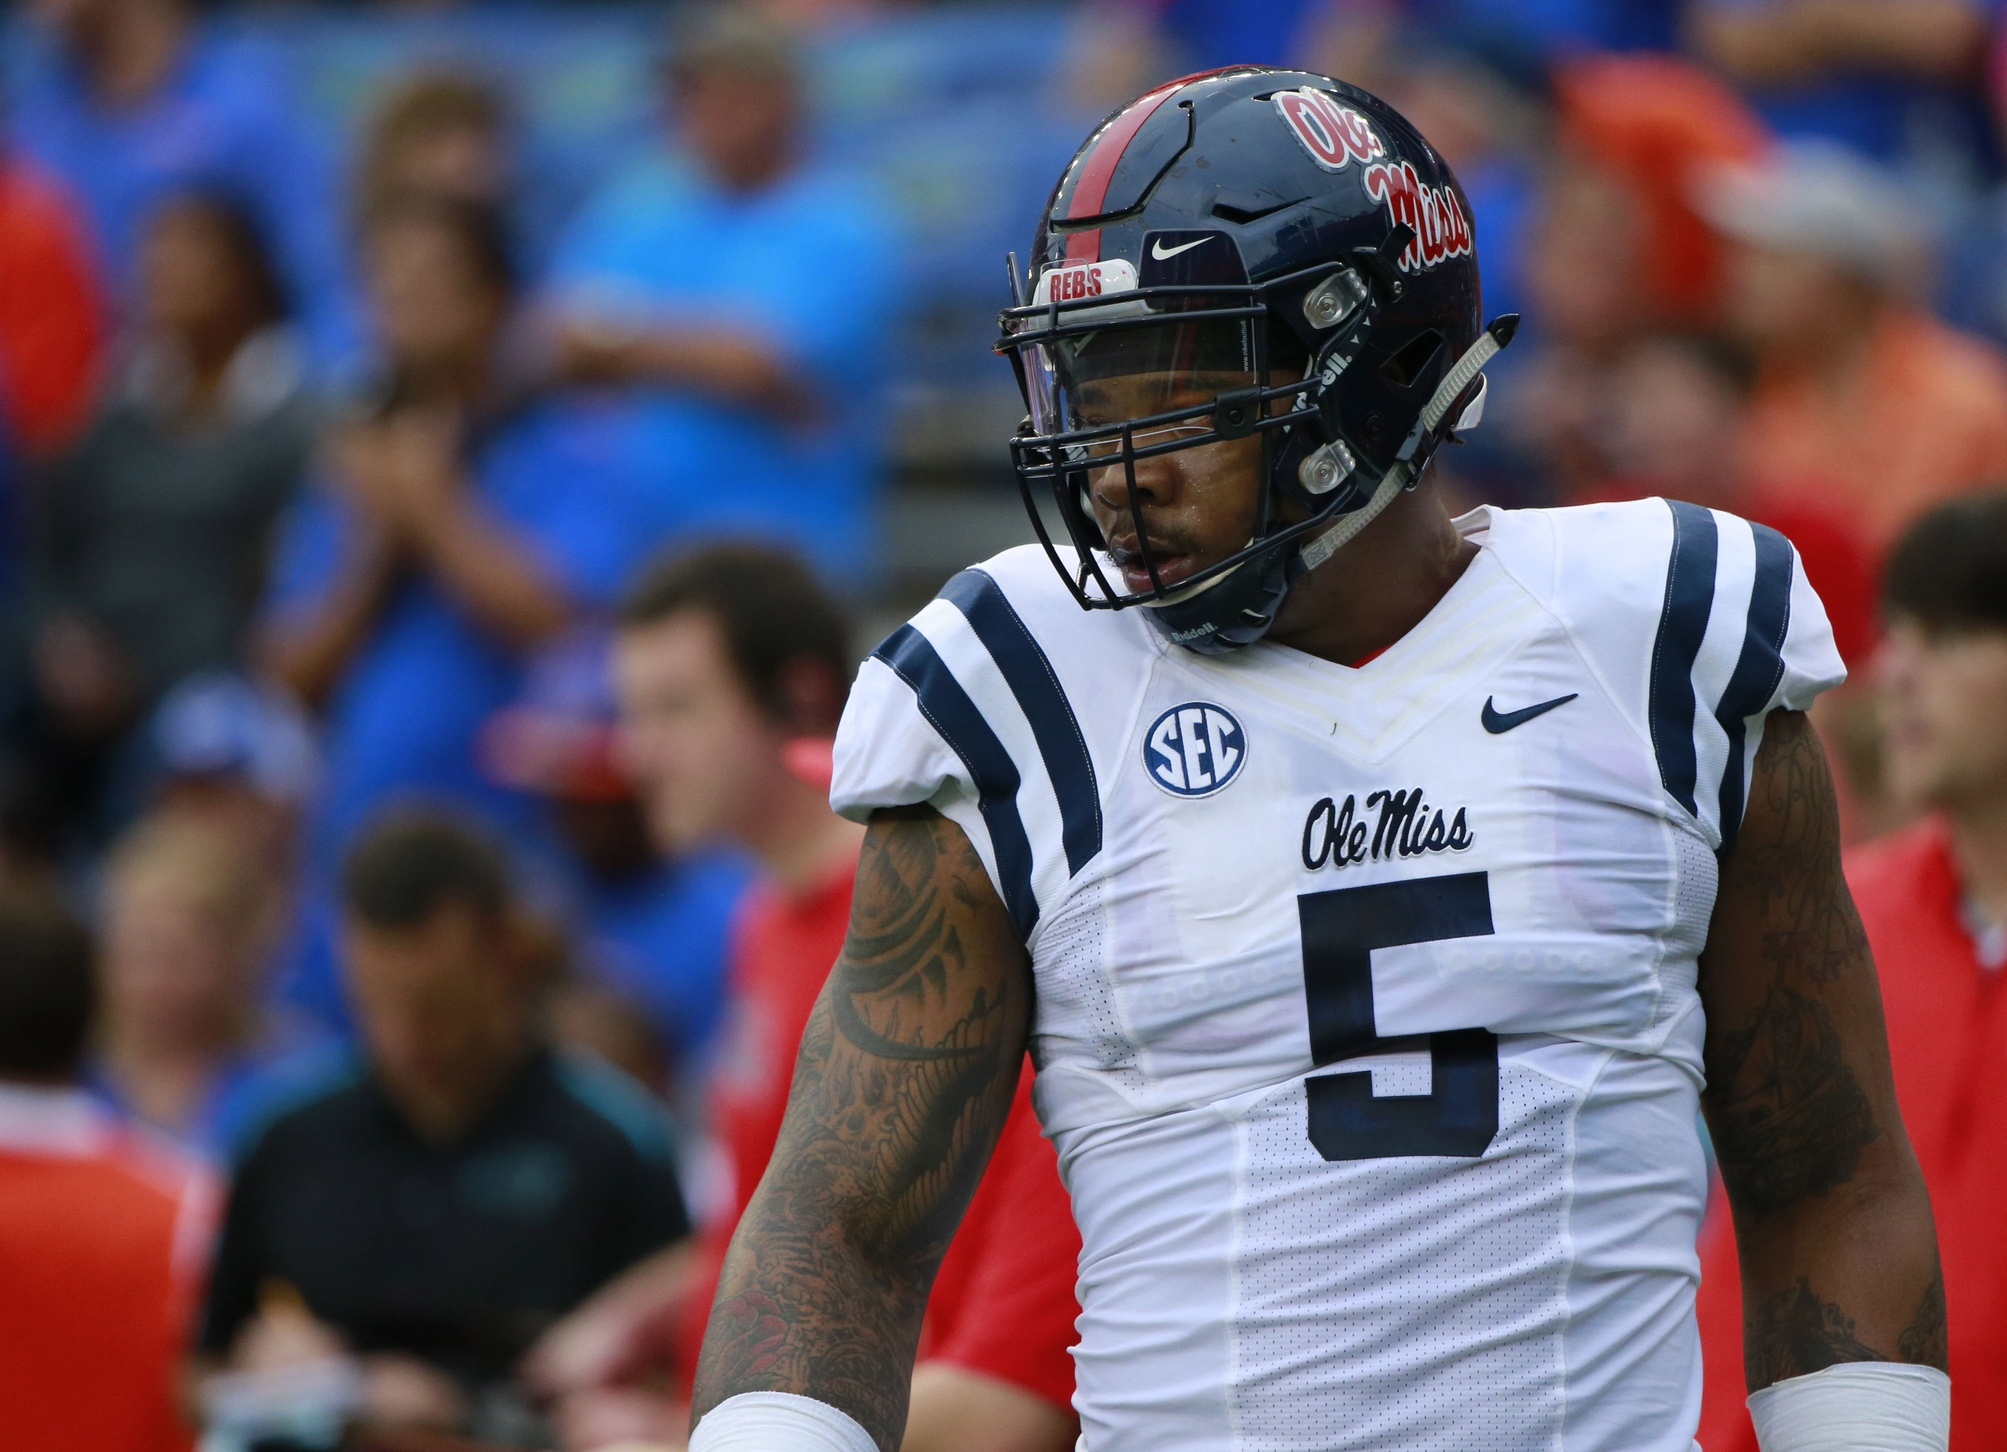 Oct 3, 2015; Gainesville, FL, USA; Mississippi Rebels defensive tackle Robert Nkemdiche (5) looks on prior to the game at Ben Hill Griffin Stadium. Mandatory Credit: Kim Klement-USA TODAY Sports